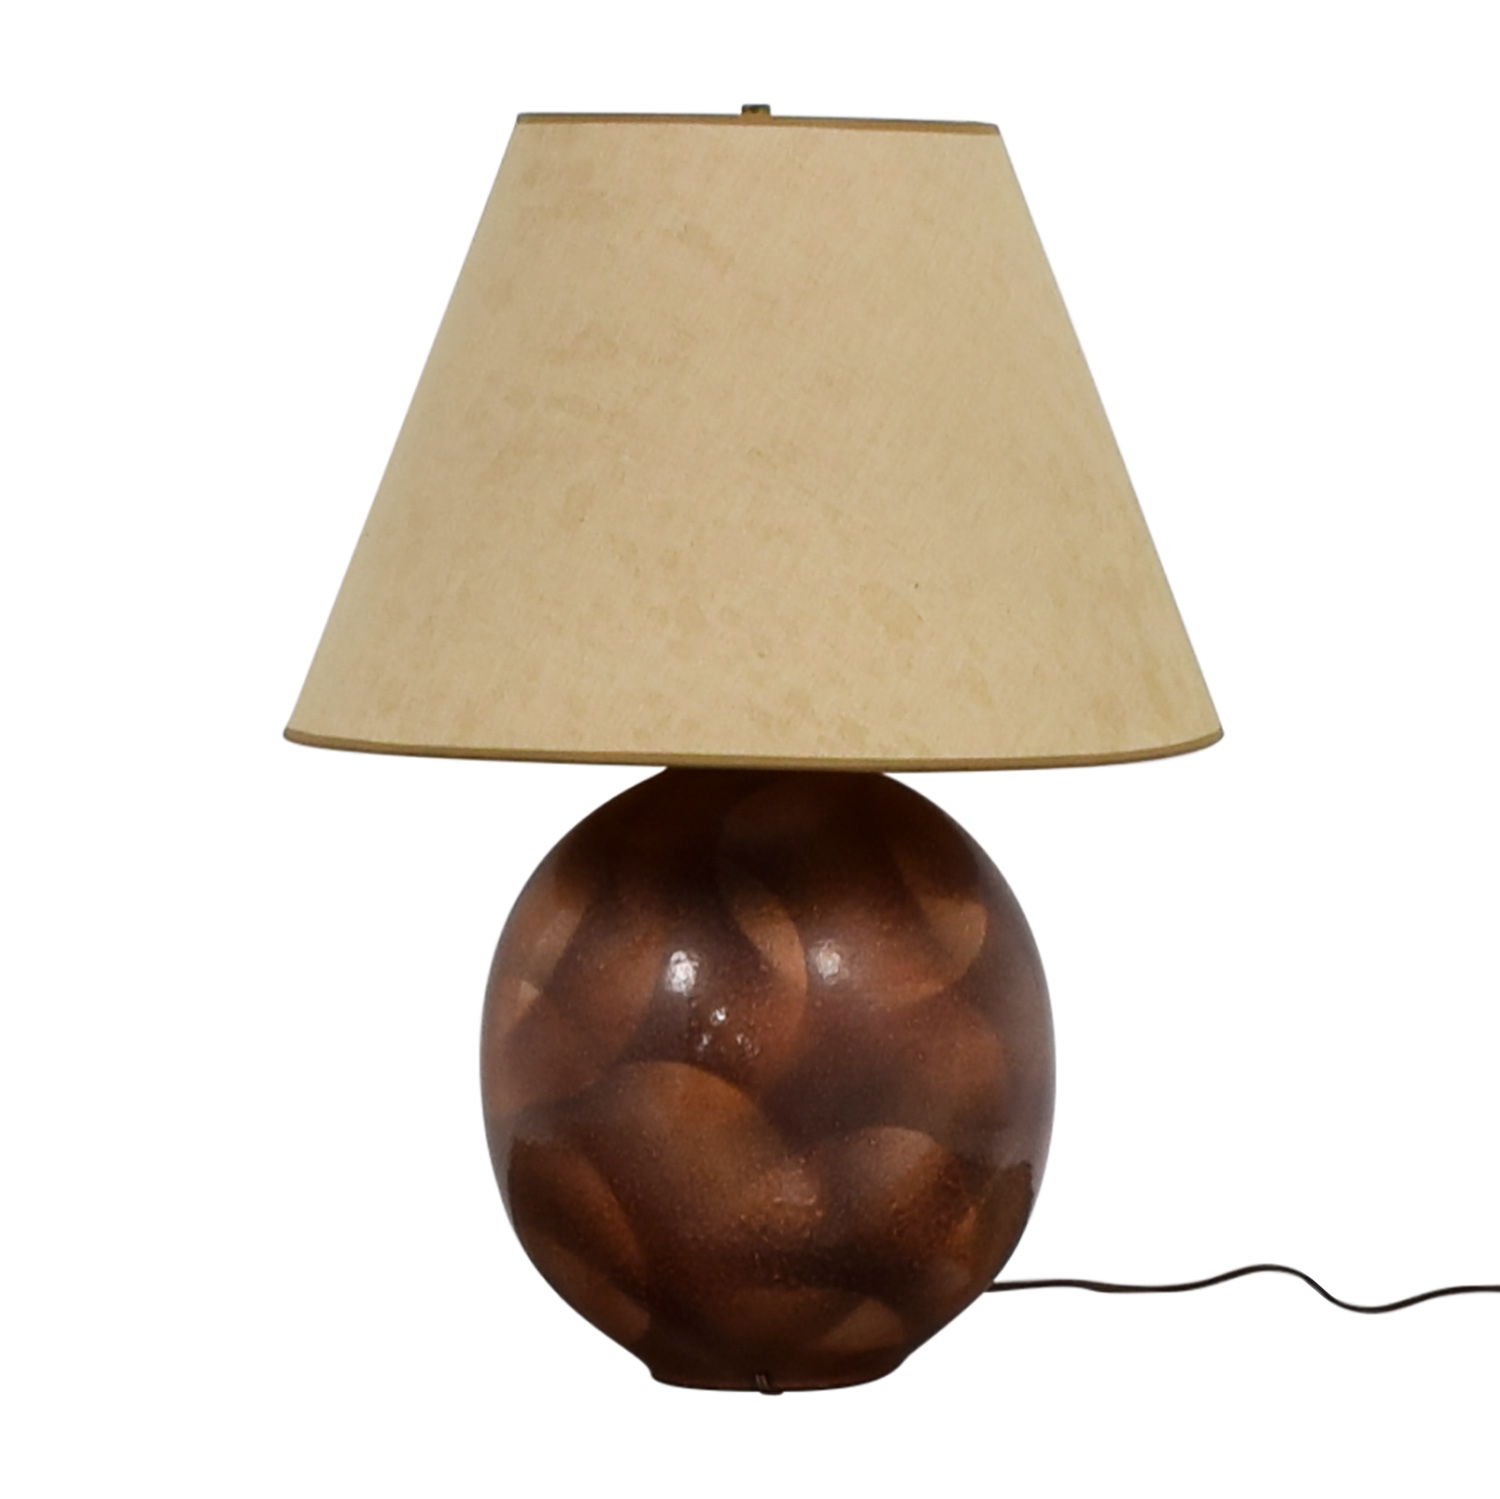 buy Brown and Tan Lamp online